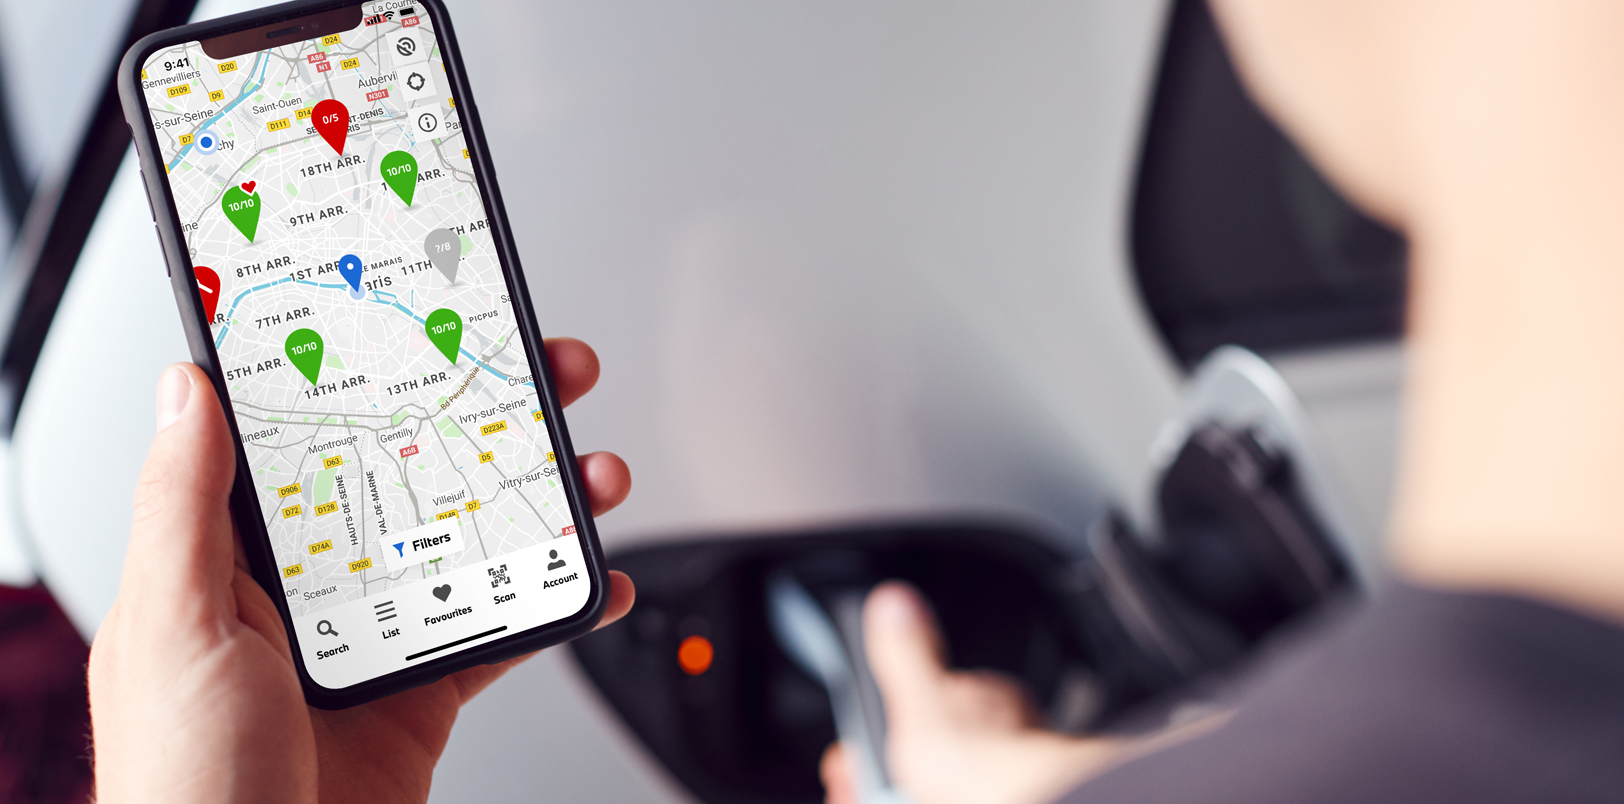 Providing access to the largest charging network in the world